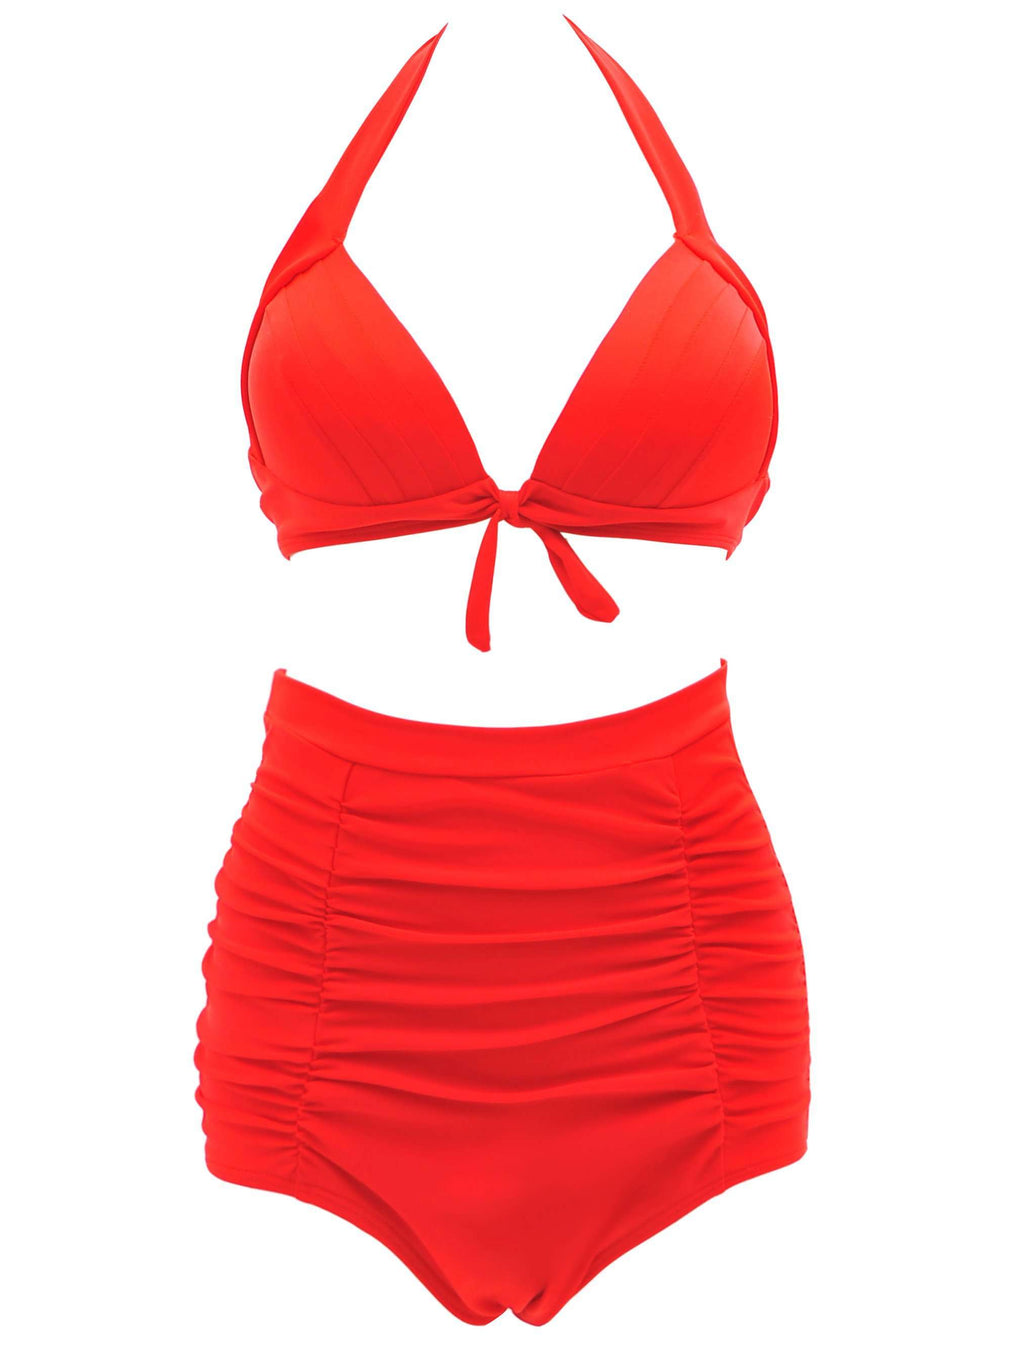 Retro Swimsuit High Waist Bikini Swimsuit